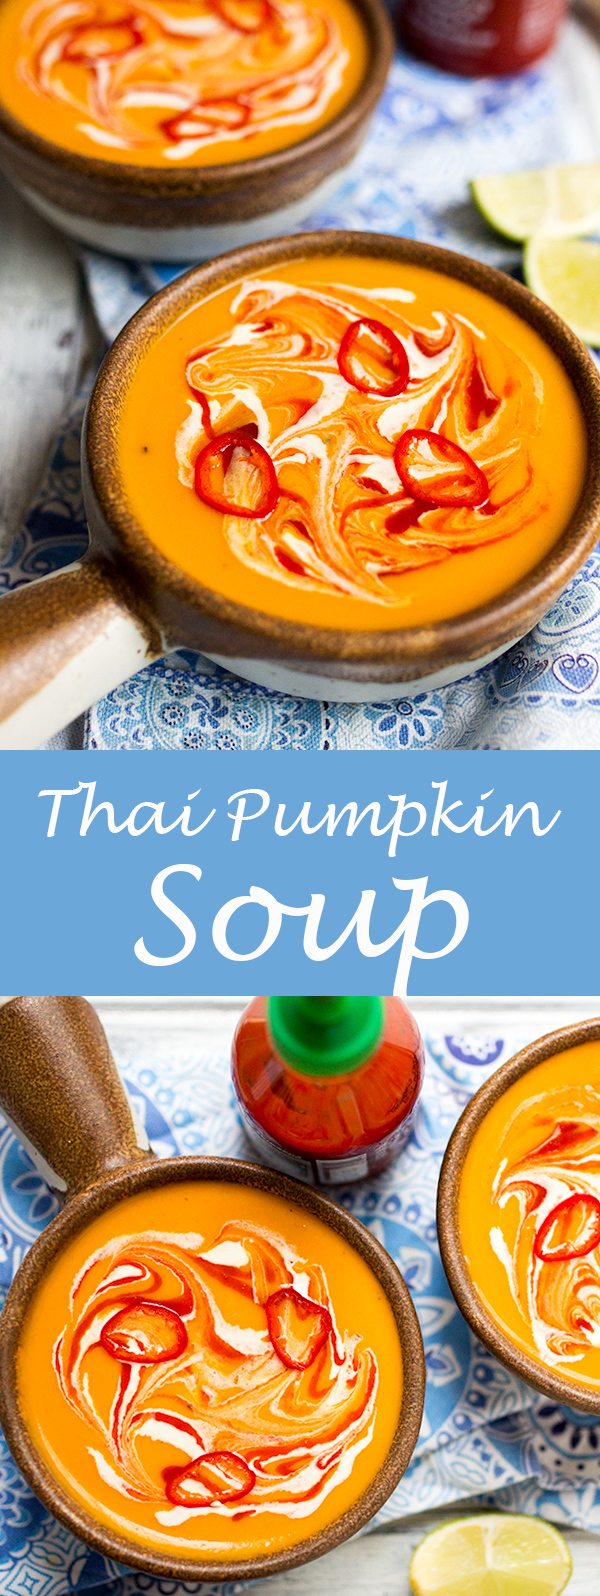 Thai Pumpkin Soup Recipe